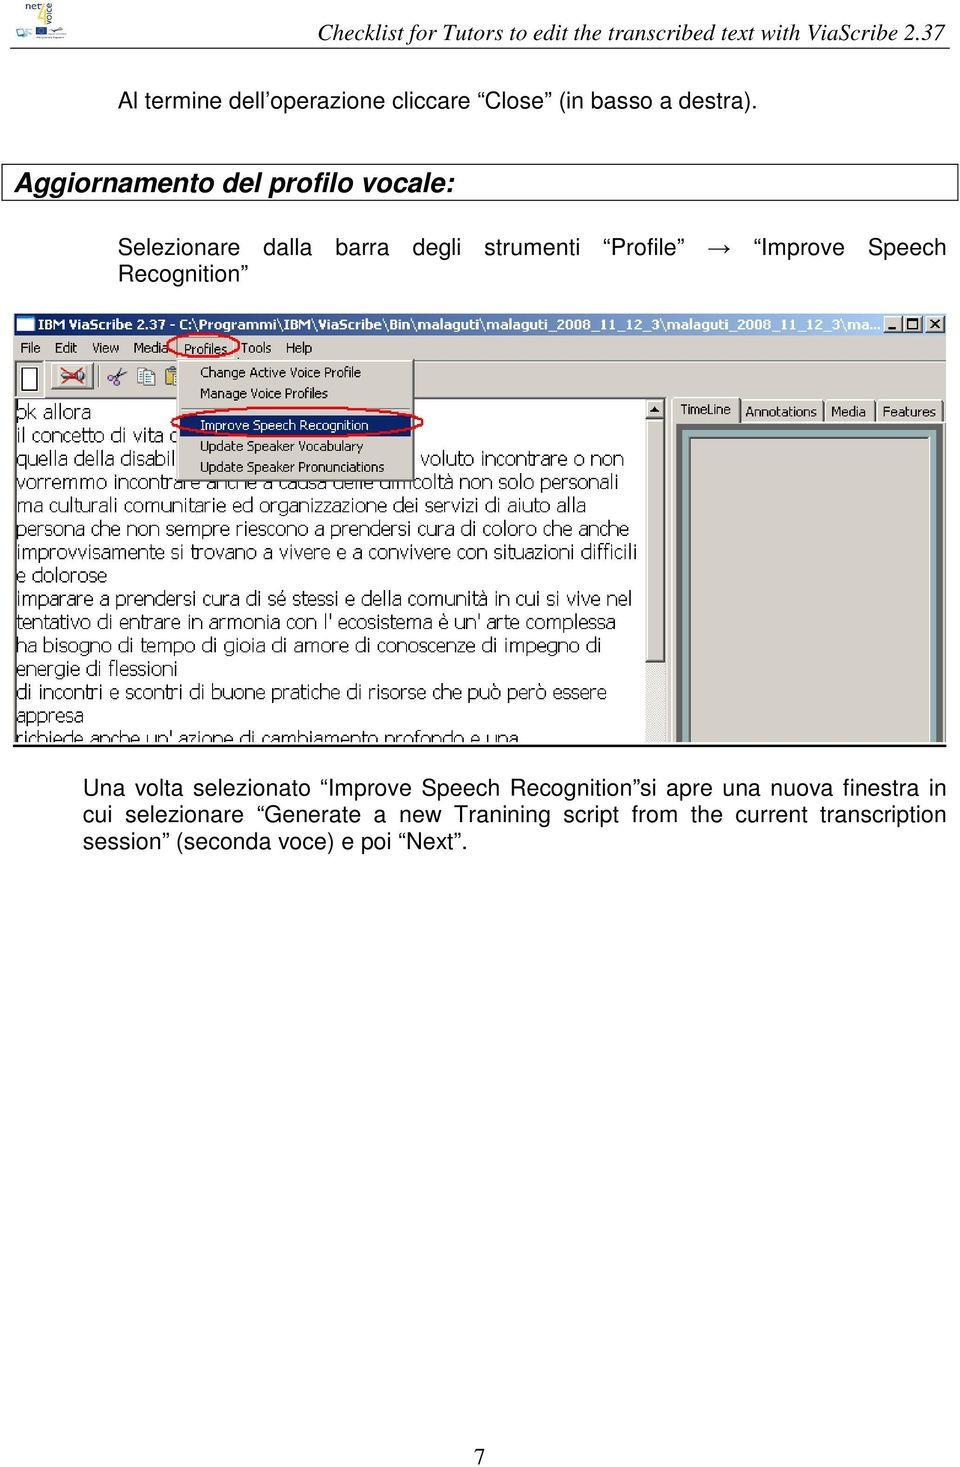 generate pdf from html page